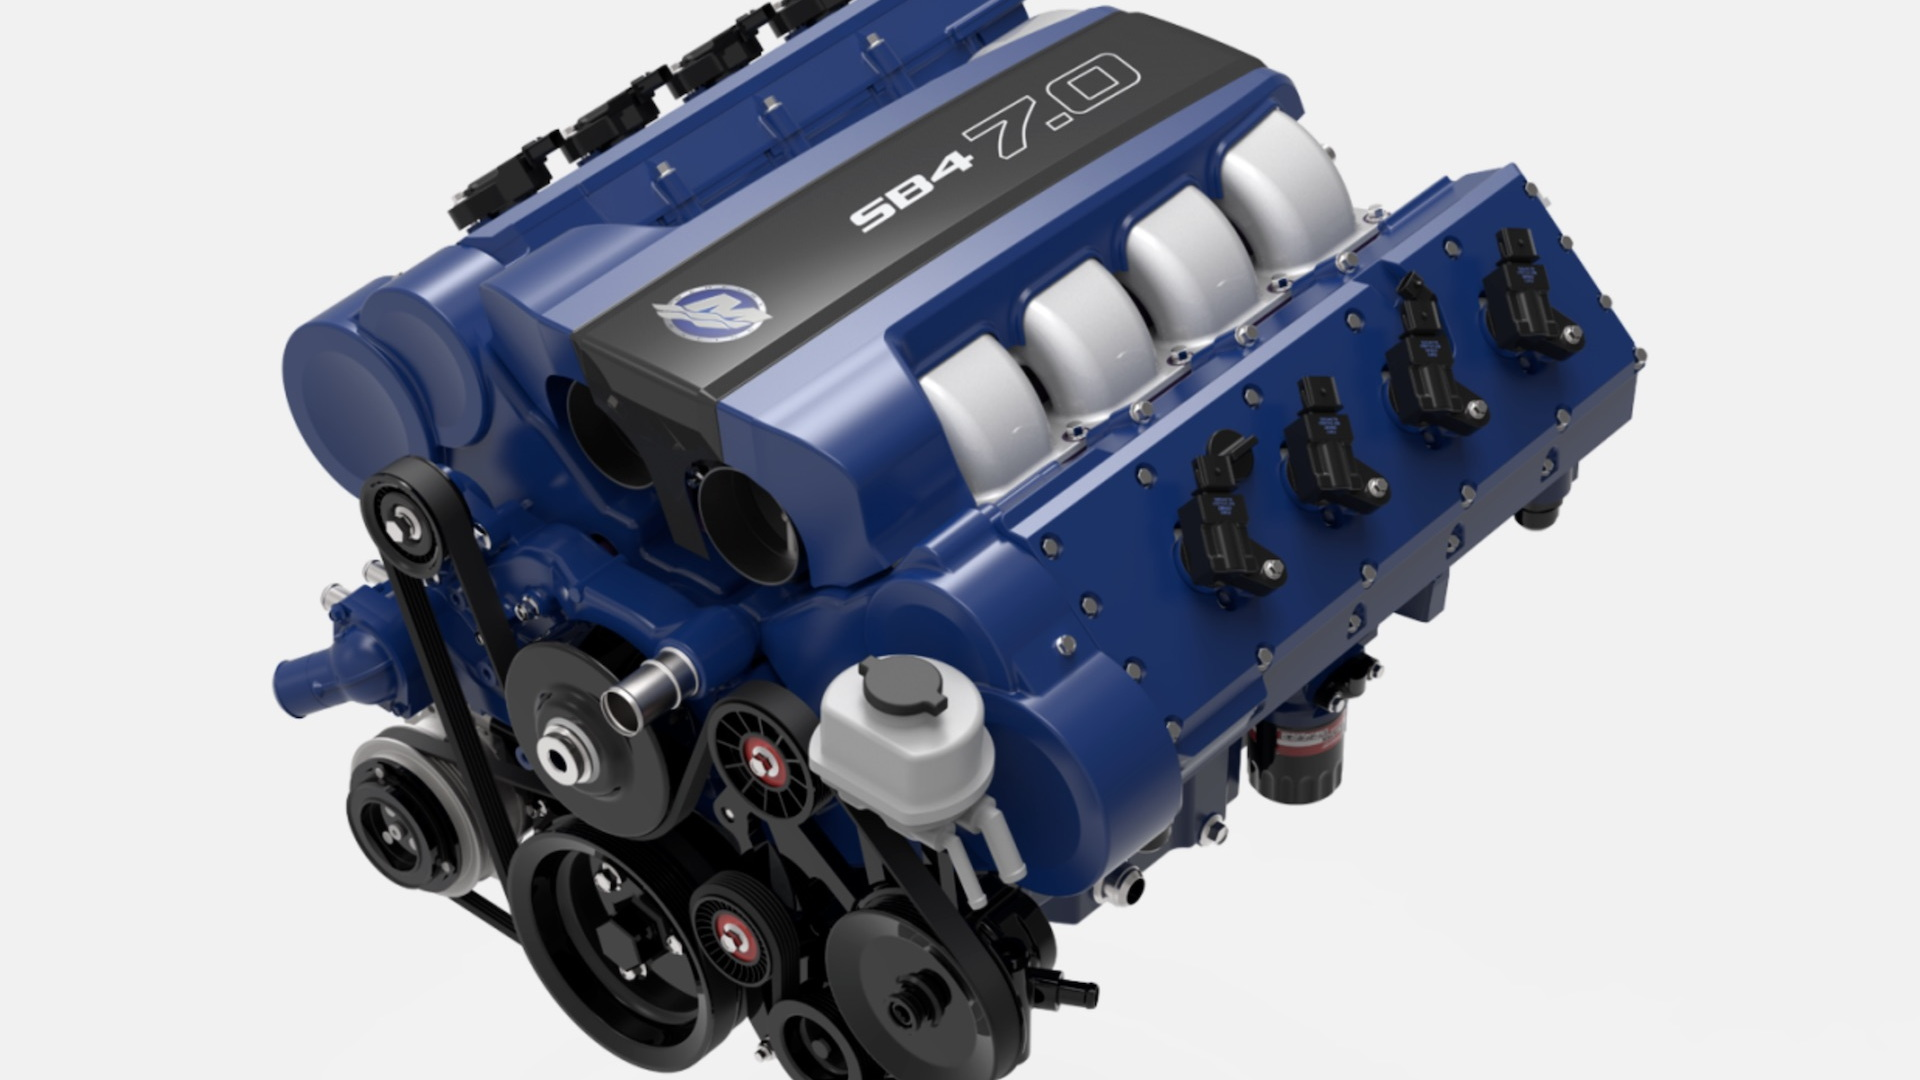 Mercury Racing 7.0-liter SB4 V-8 crate engine